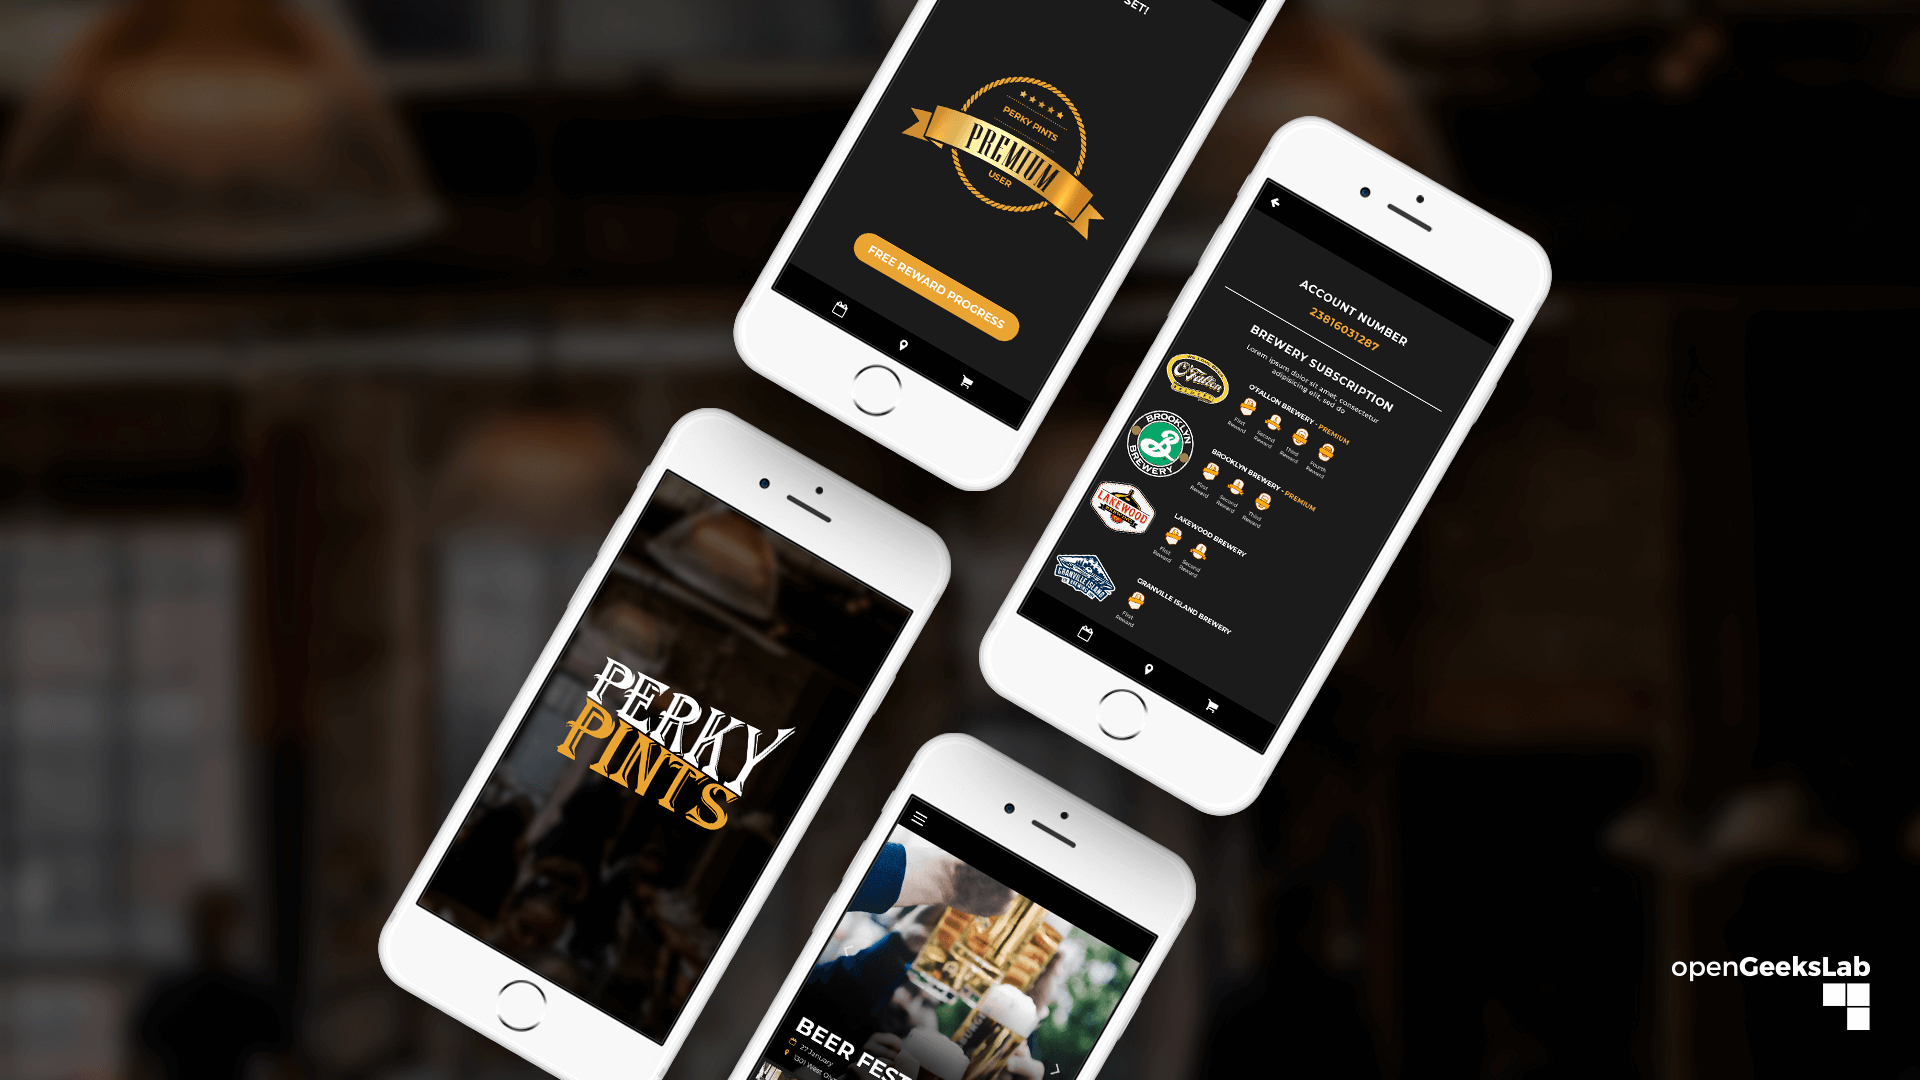 Perky Pints Customer Loyalty App